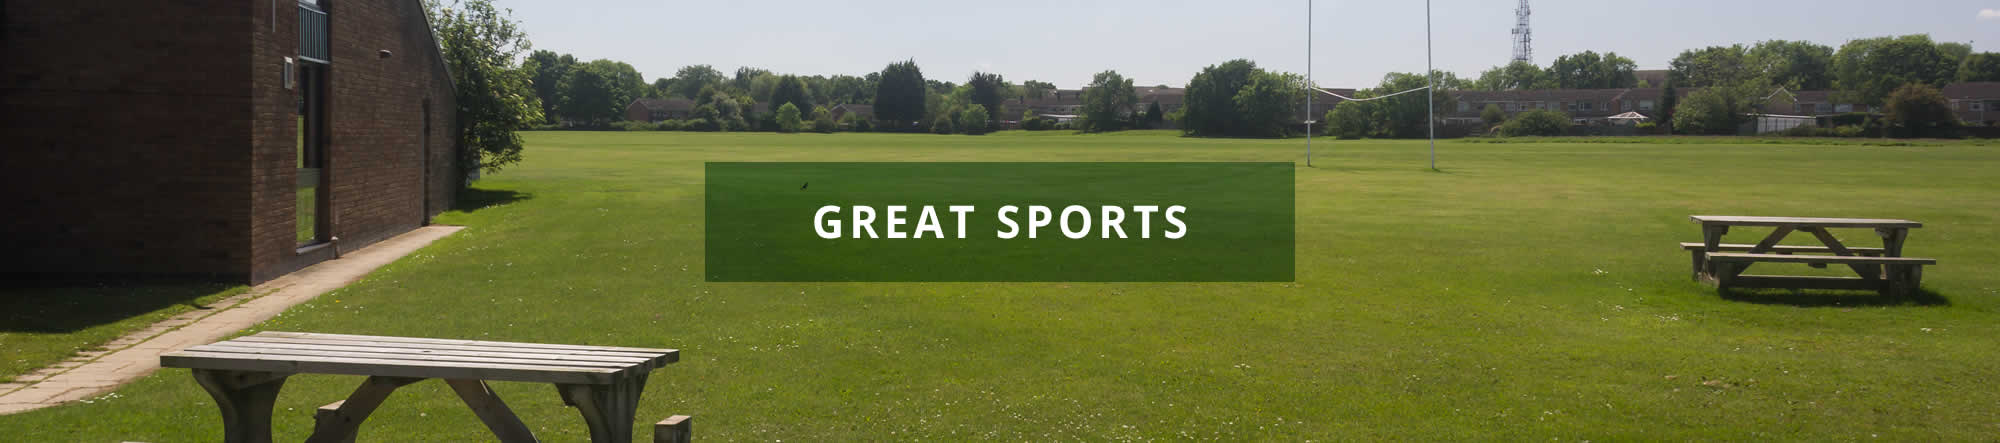 Land Rover Sports and Social Club - Great Facilities